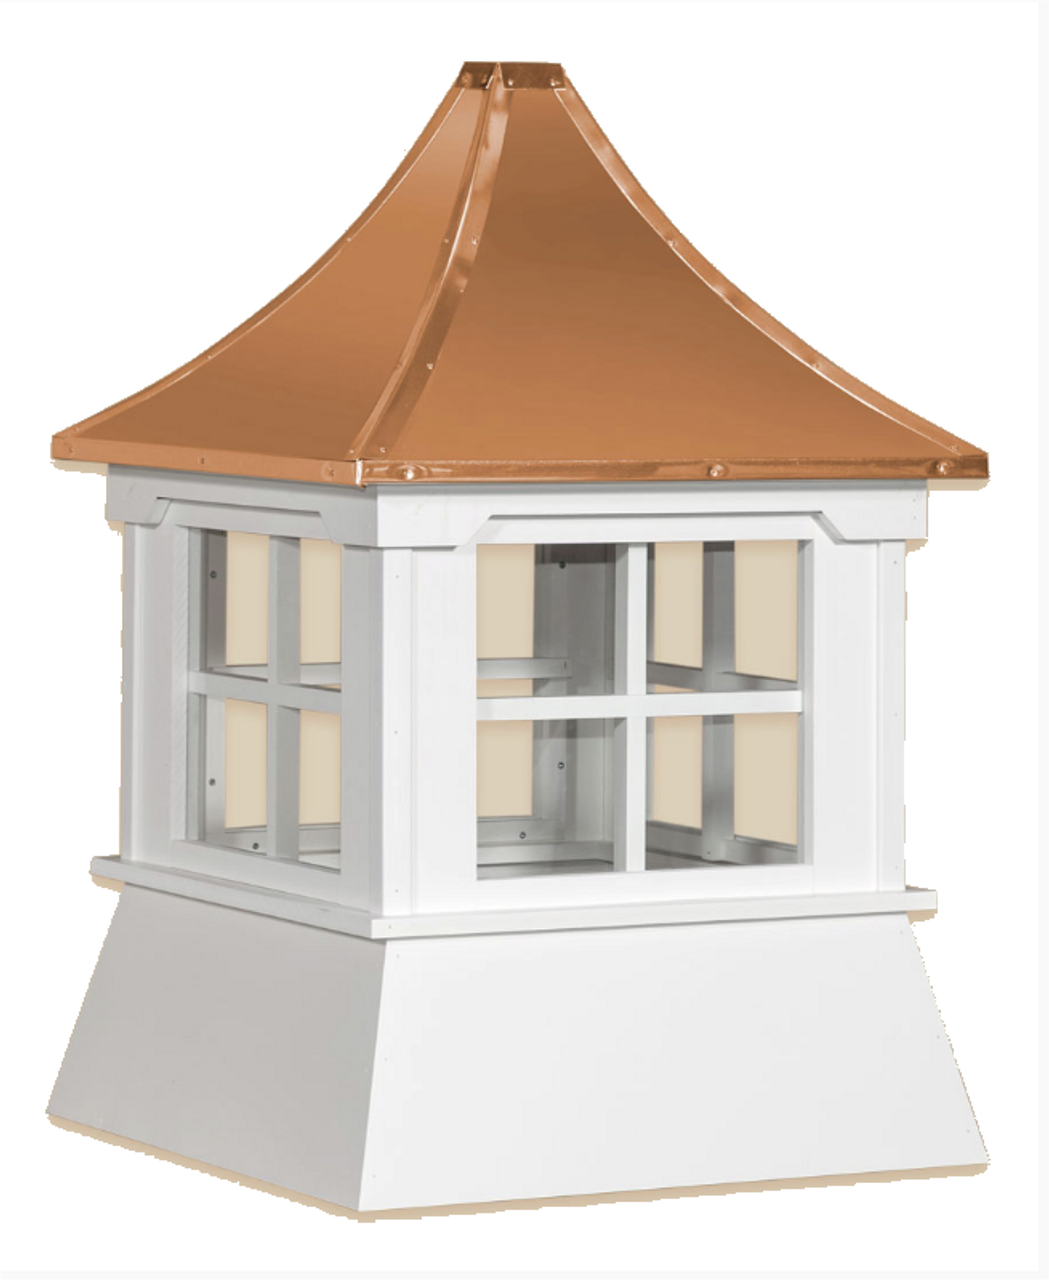 Cupola - Victorian Shed: Azek – Windowed Pagoda Copper Top - 21Lx21Wx23H